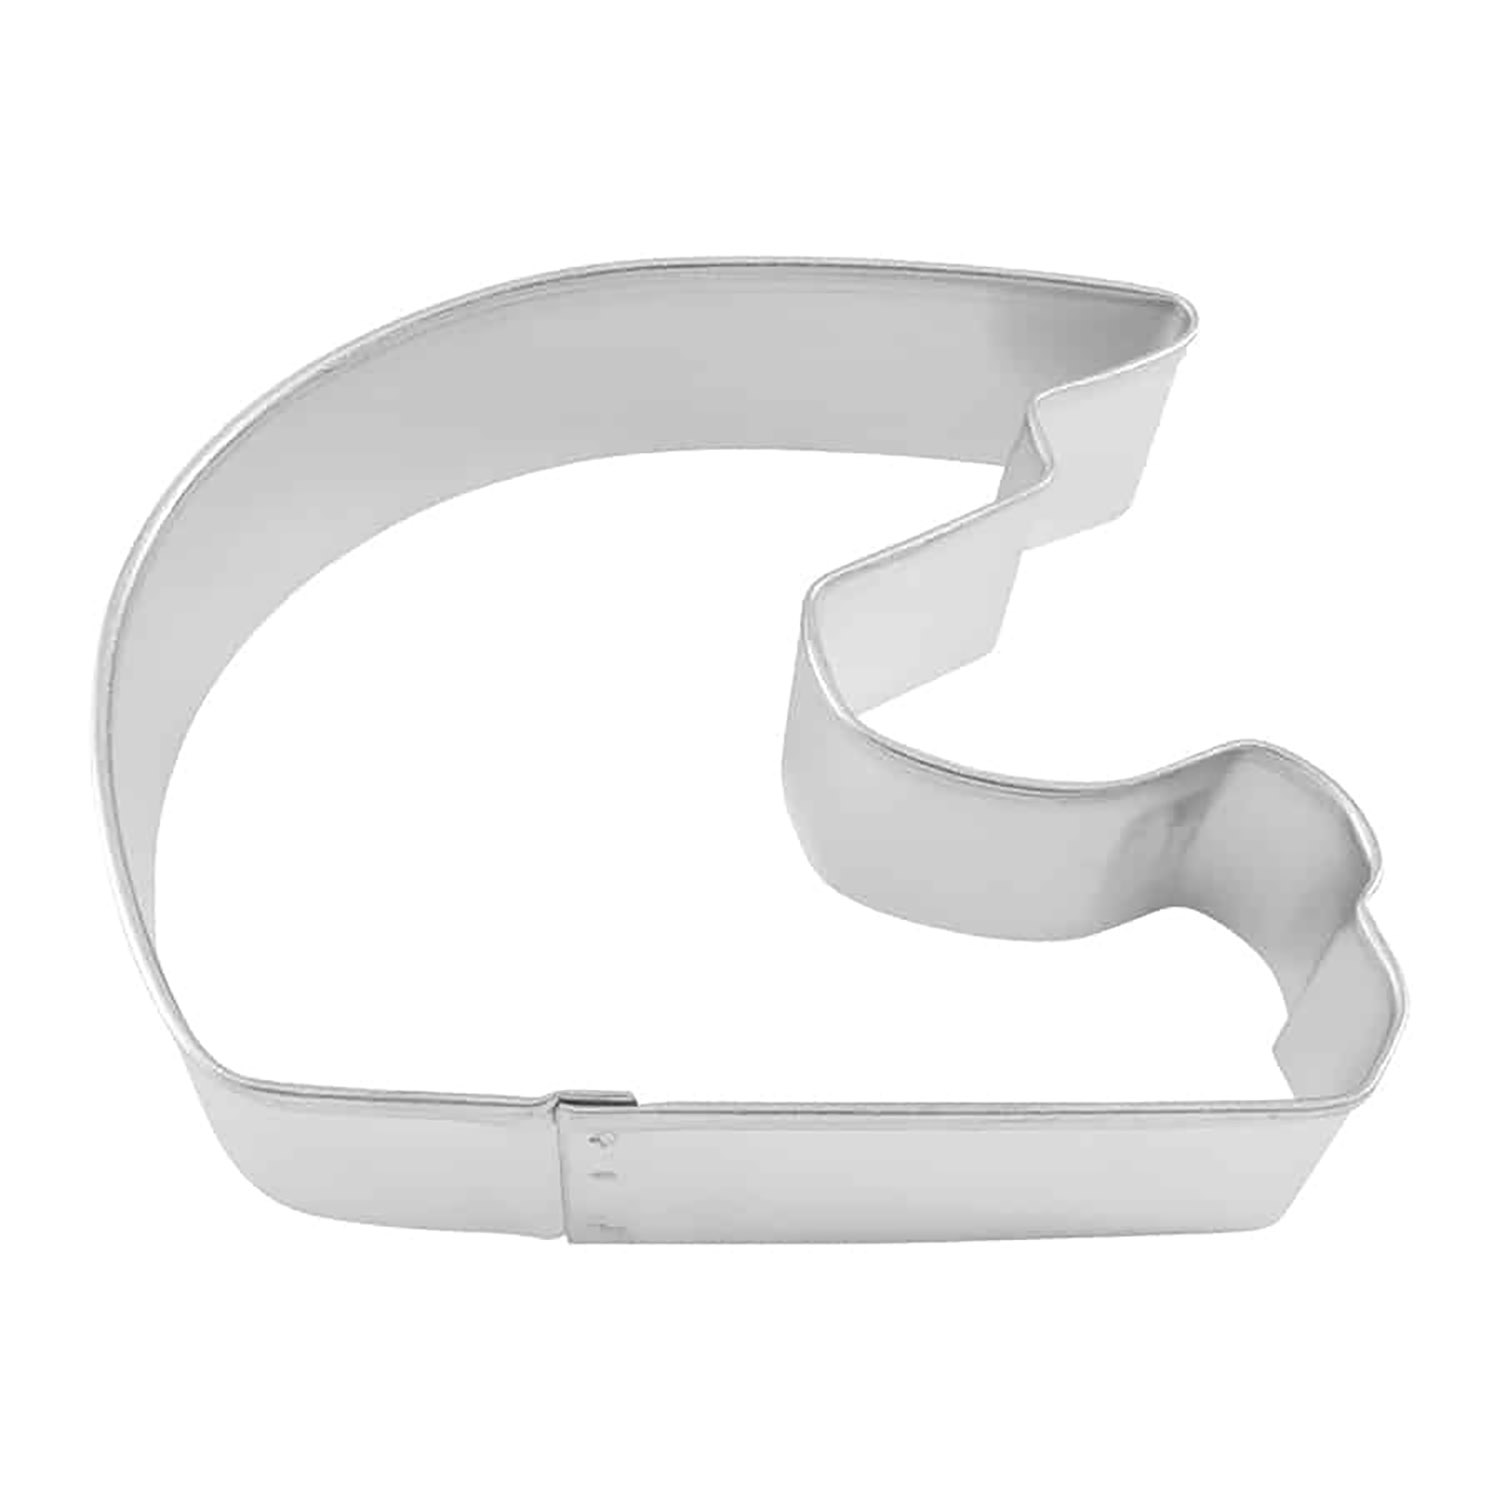 Racing Helmet Cookie Cutter